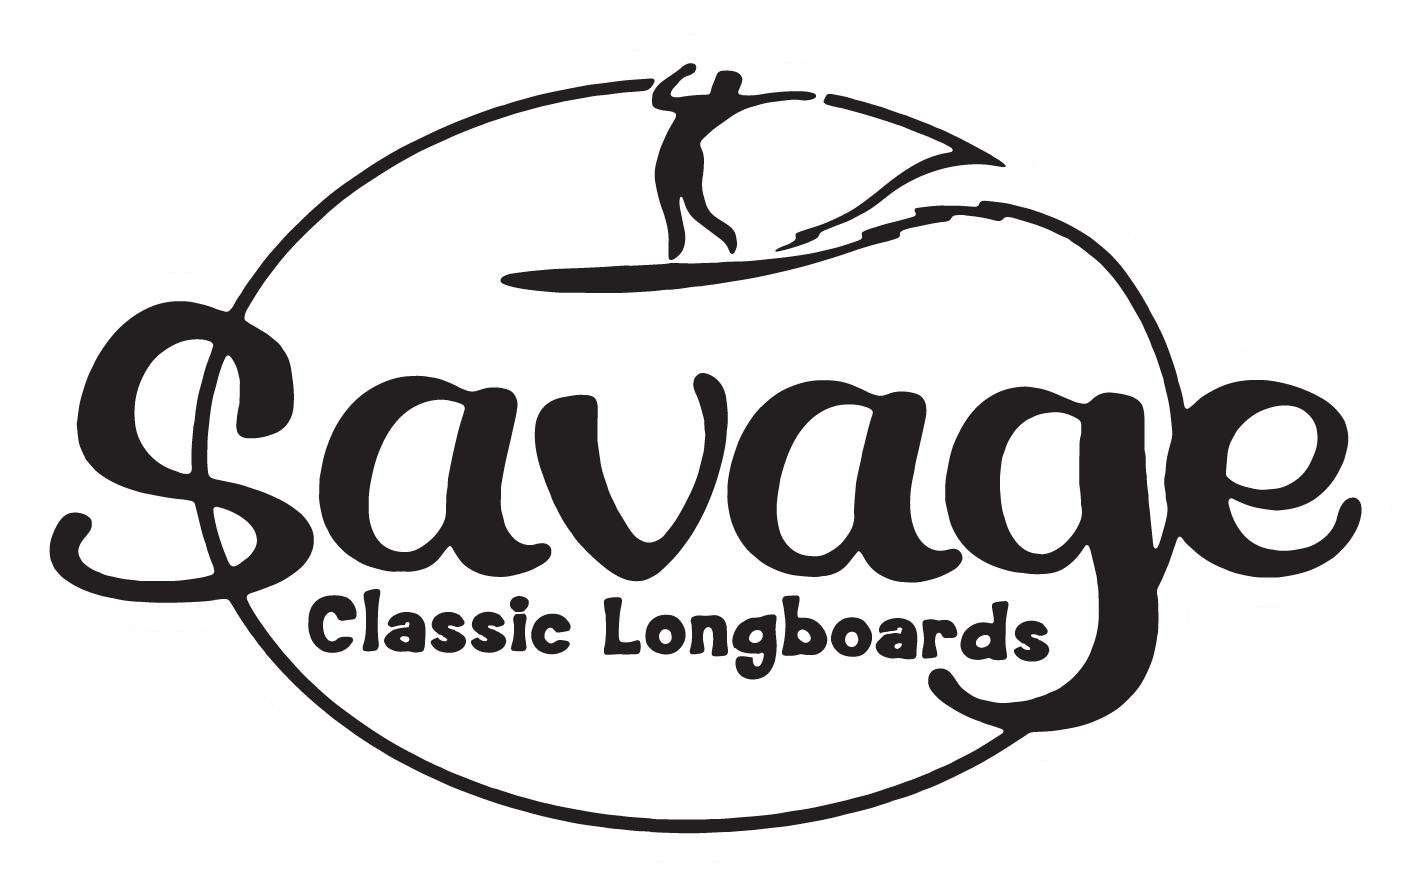 savage longboards logo